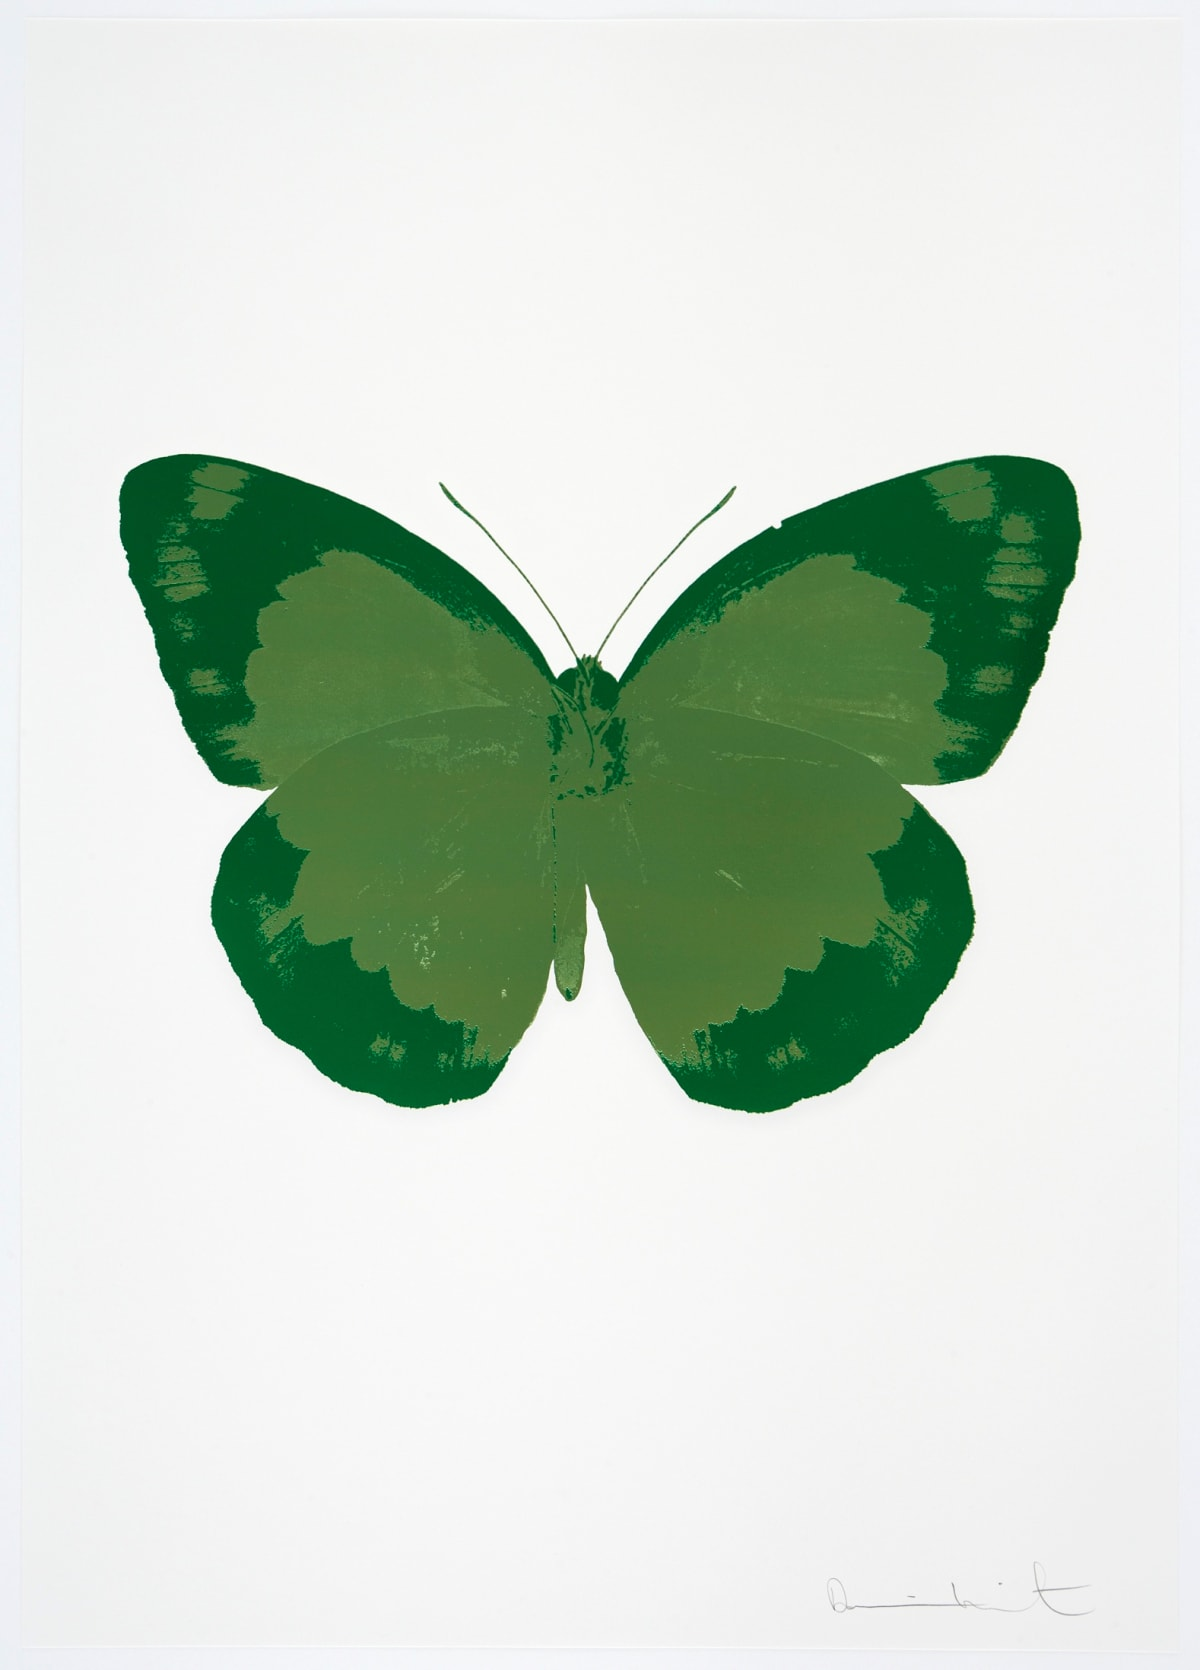 Damien Hirst The Souls II - Leaf Green/Emerald Green/Blind Impression, 2010 2 colour foil block on 300gsm Arches 88 archival paper. Signed and numbered. Published by Paul Stolper and Other Criteria 72 x 51cm OC7889 / 658-72 Edition of 15